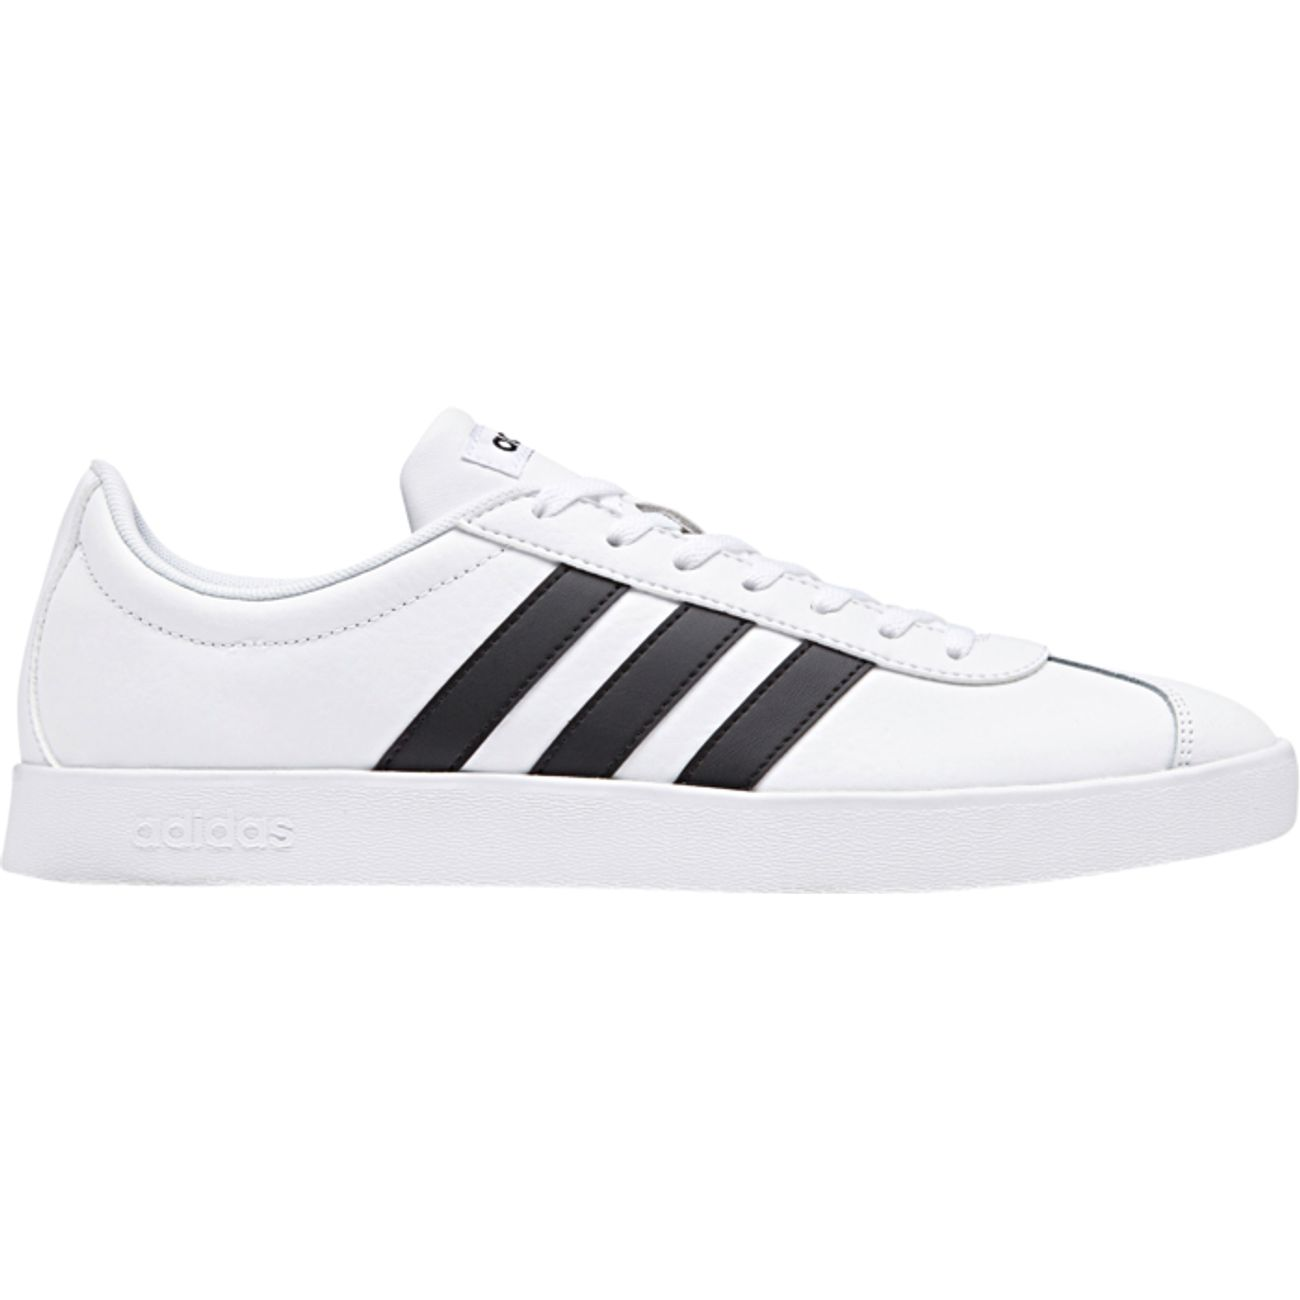 CHAUSSURES BASSES  homme ADIDAS BTE VL COURT 2.0 LTH